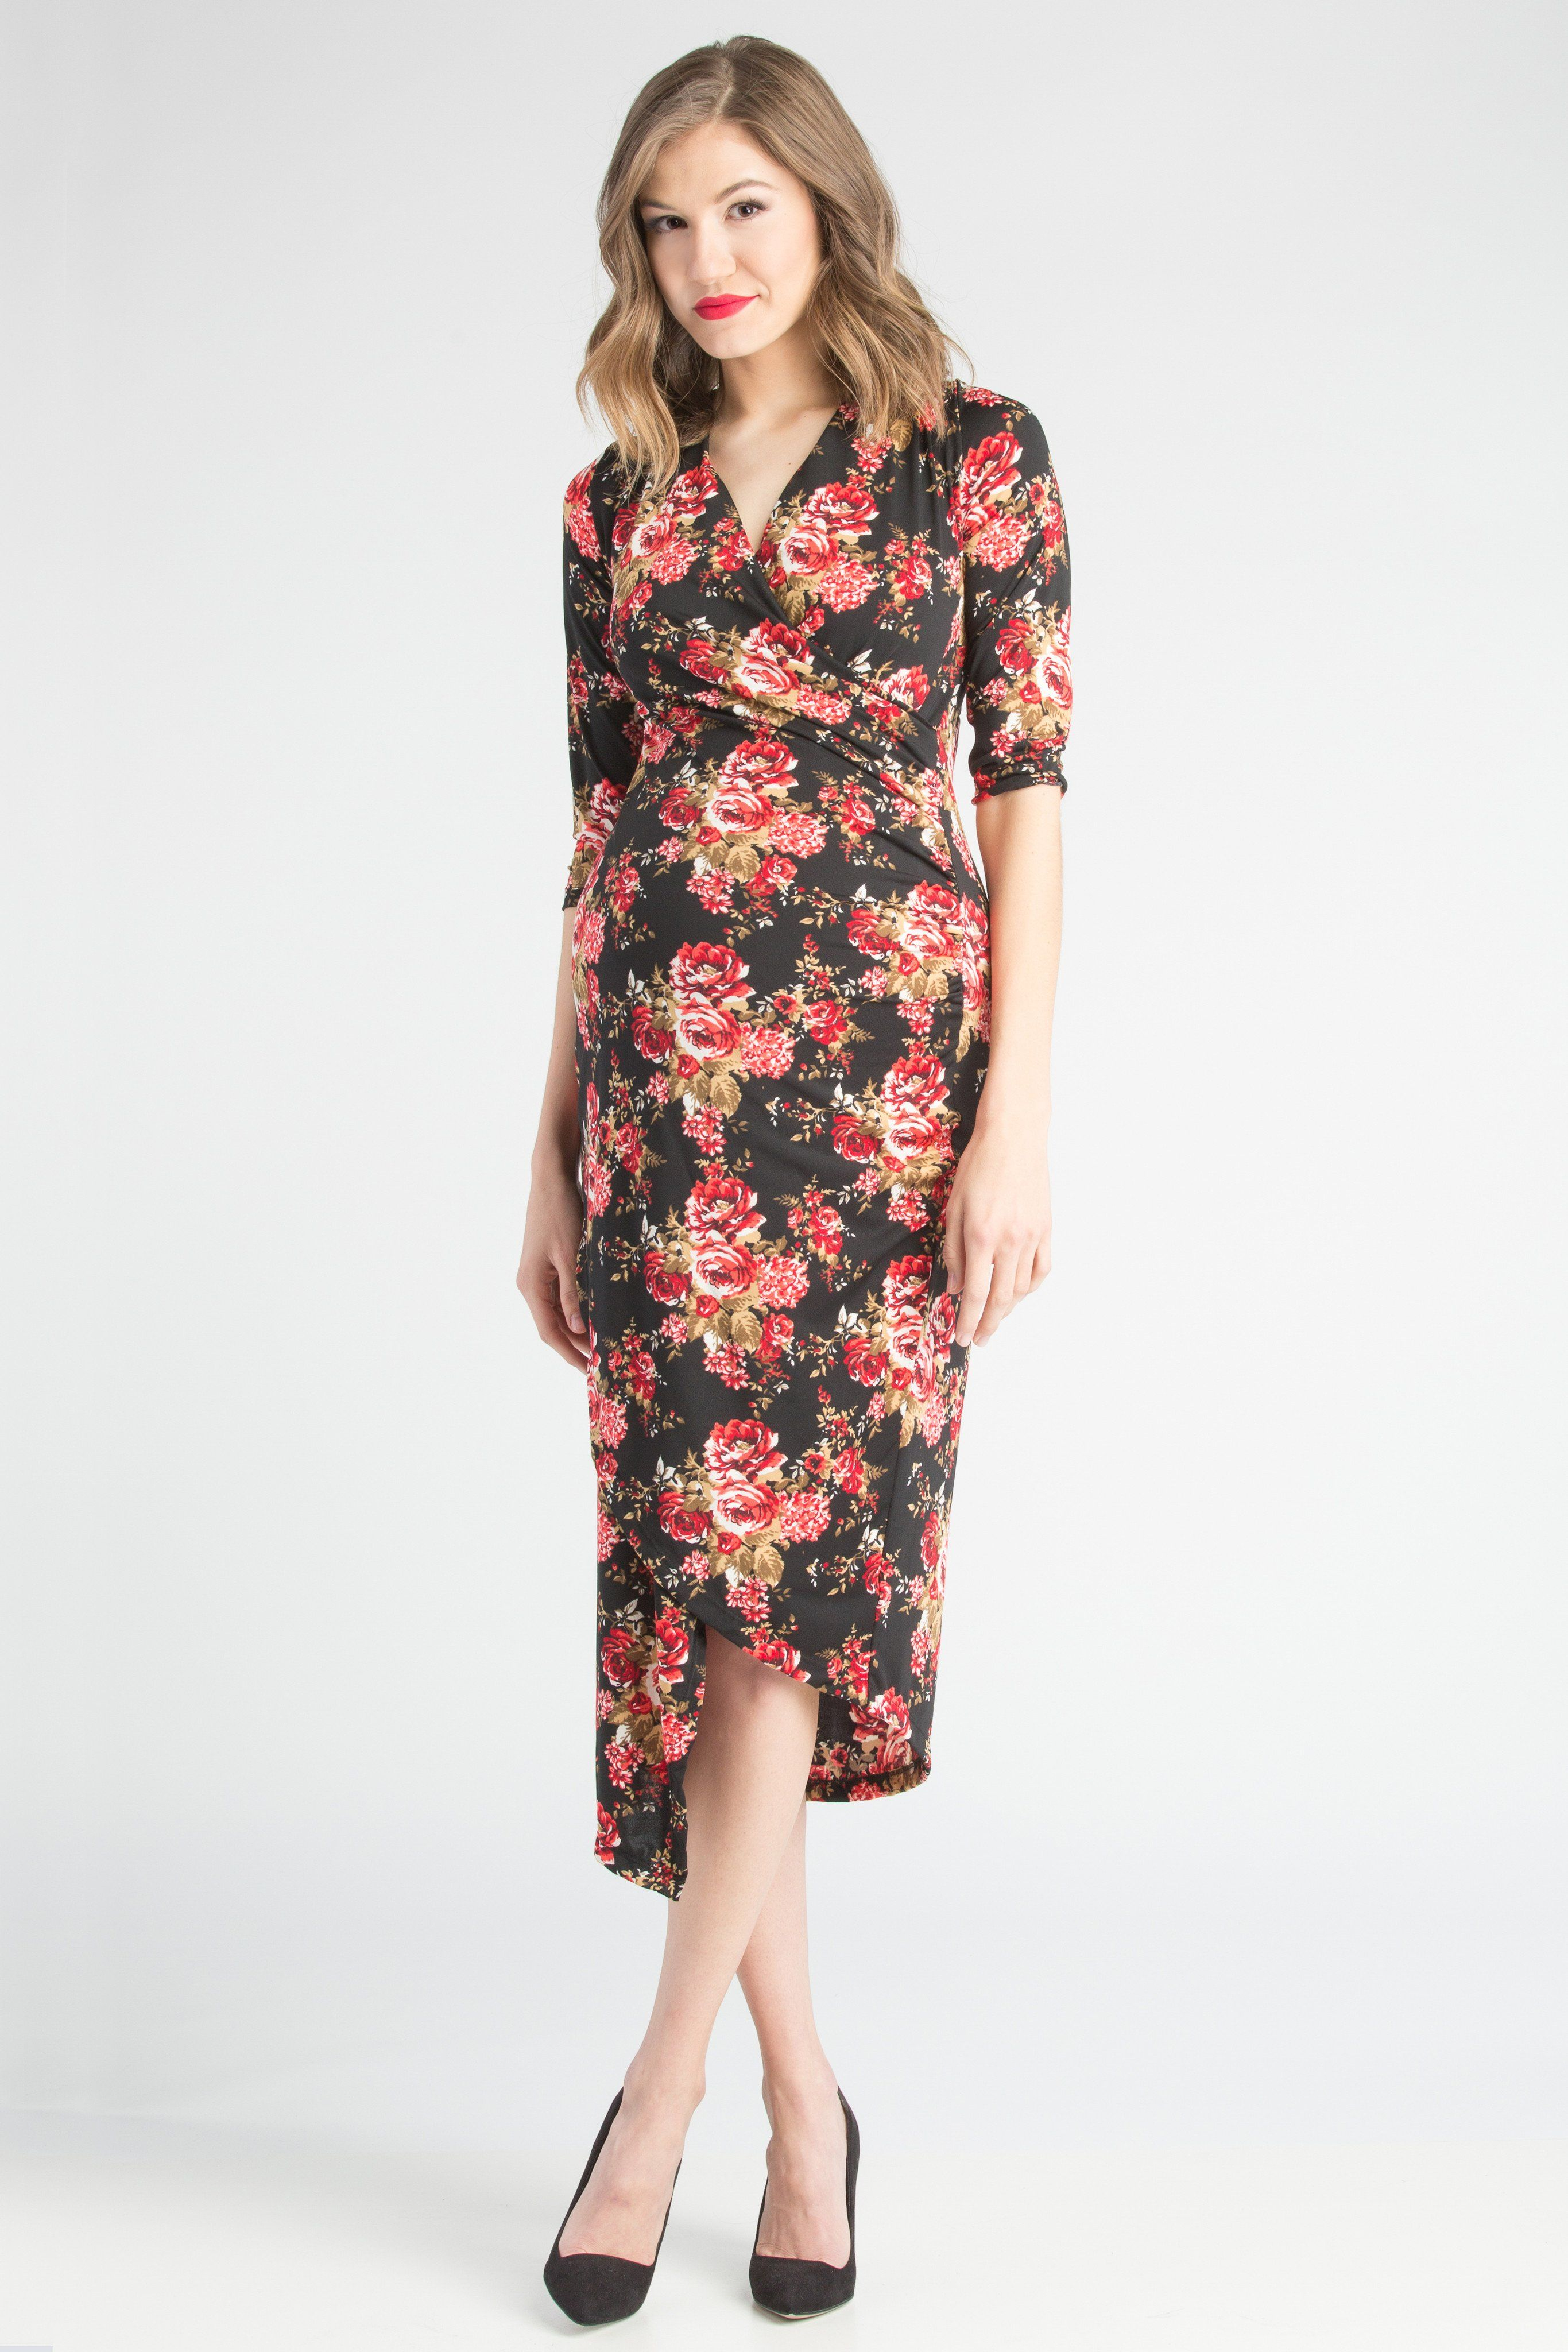 Carly dress blackred floral products